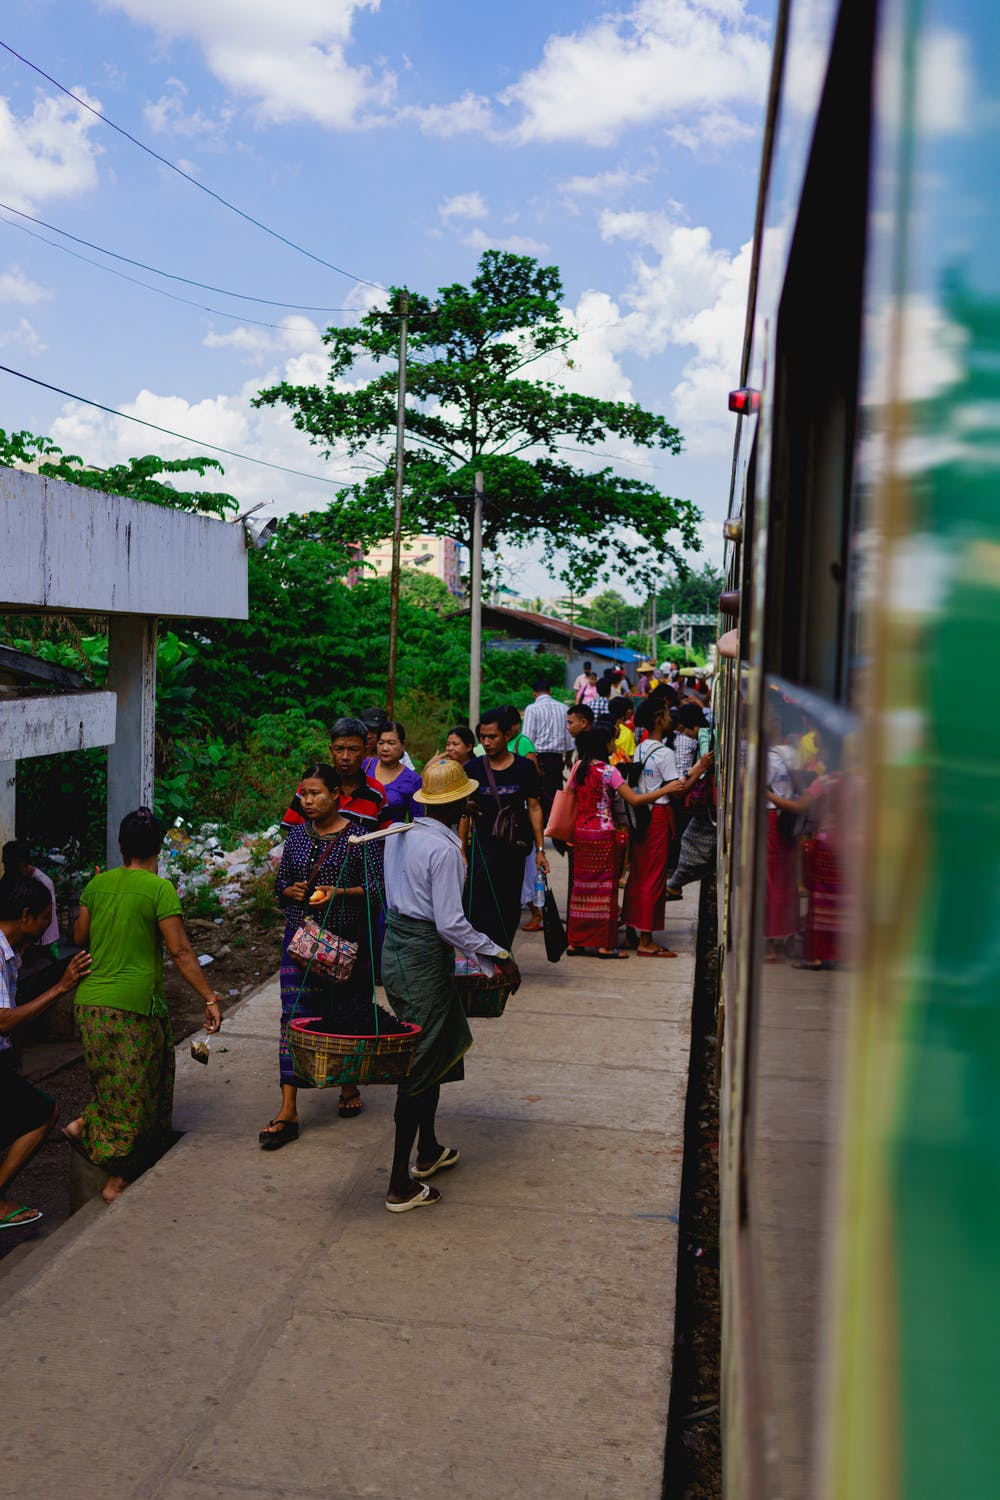 Lower-class Burmese locals wait on the train platform for the circle line Yangon metro in Yangon Myanmar